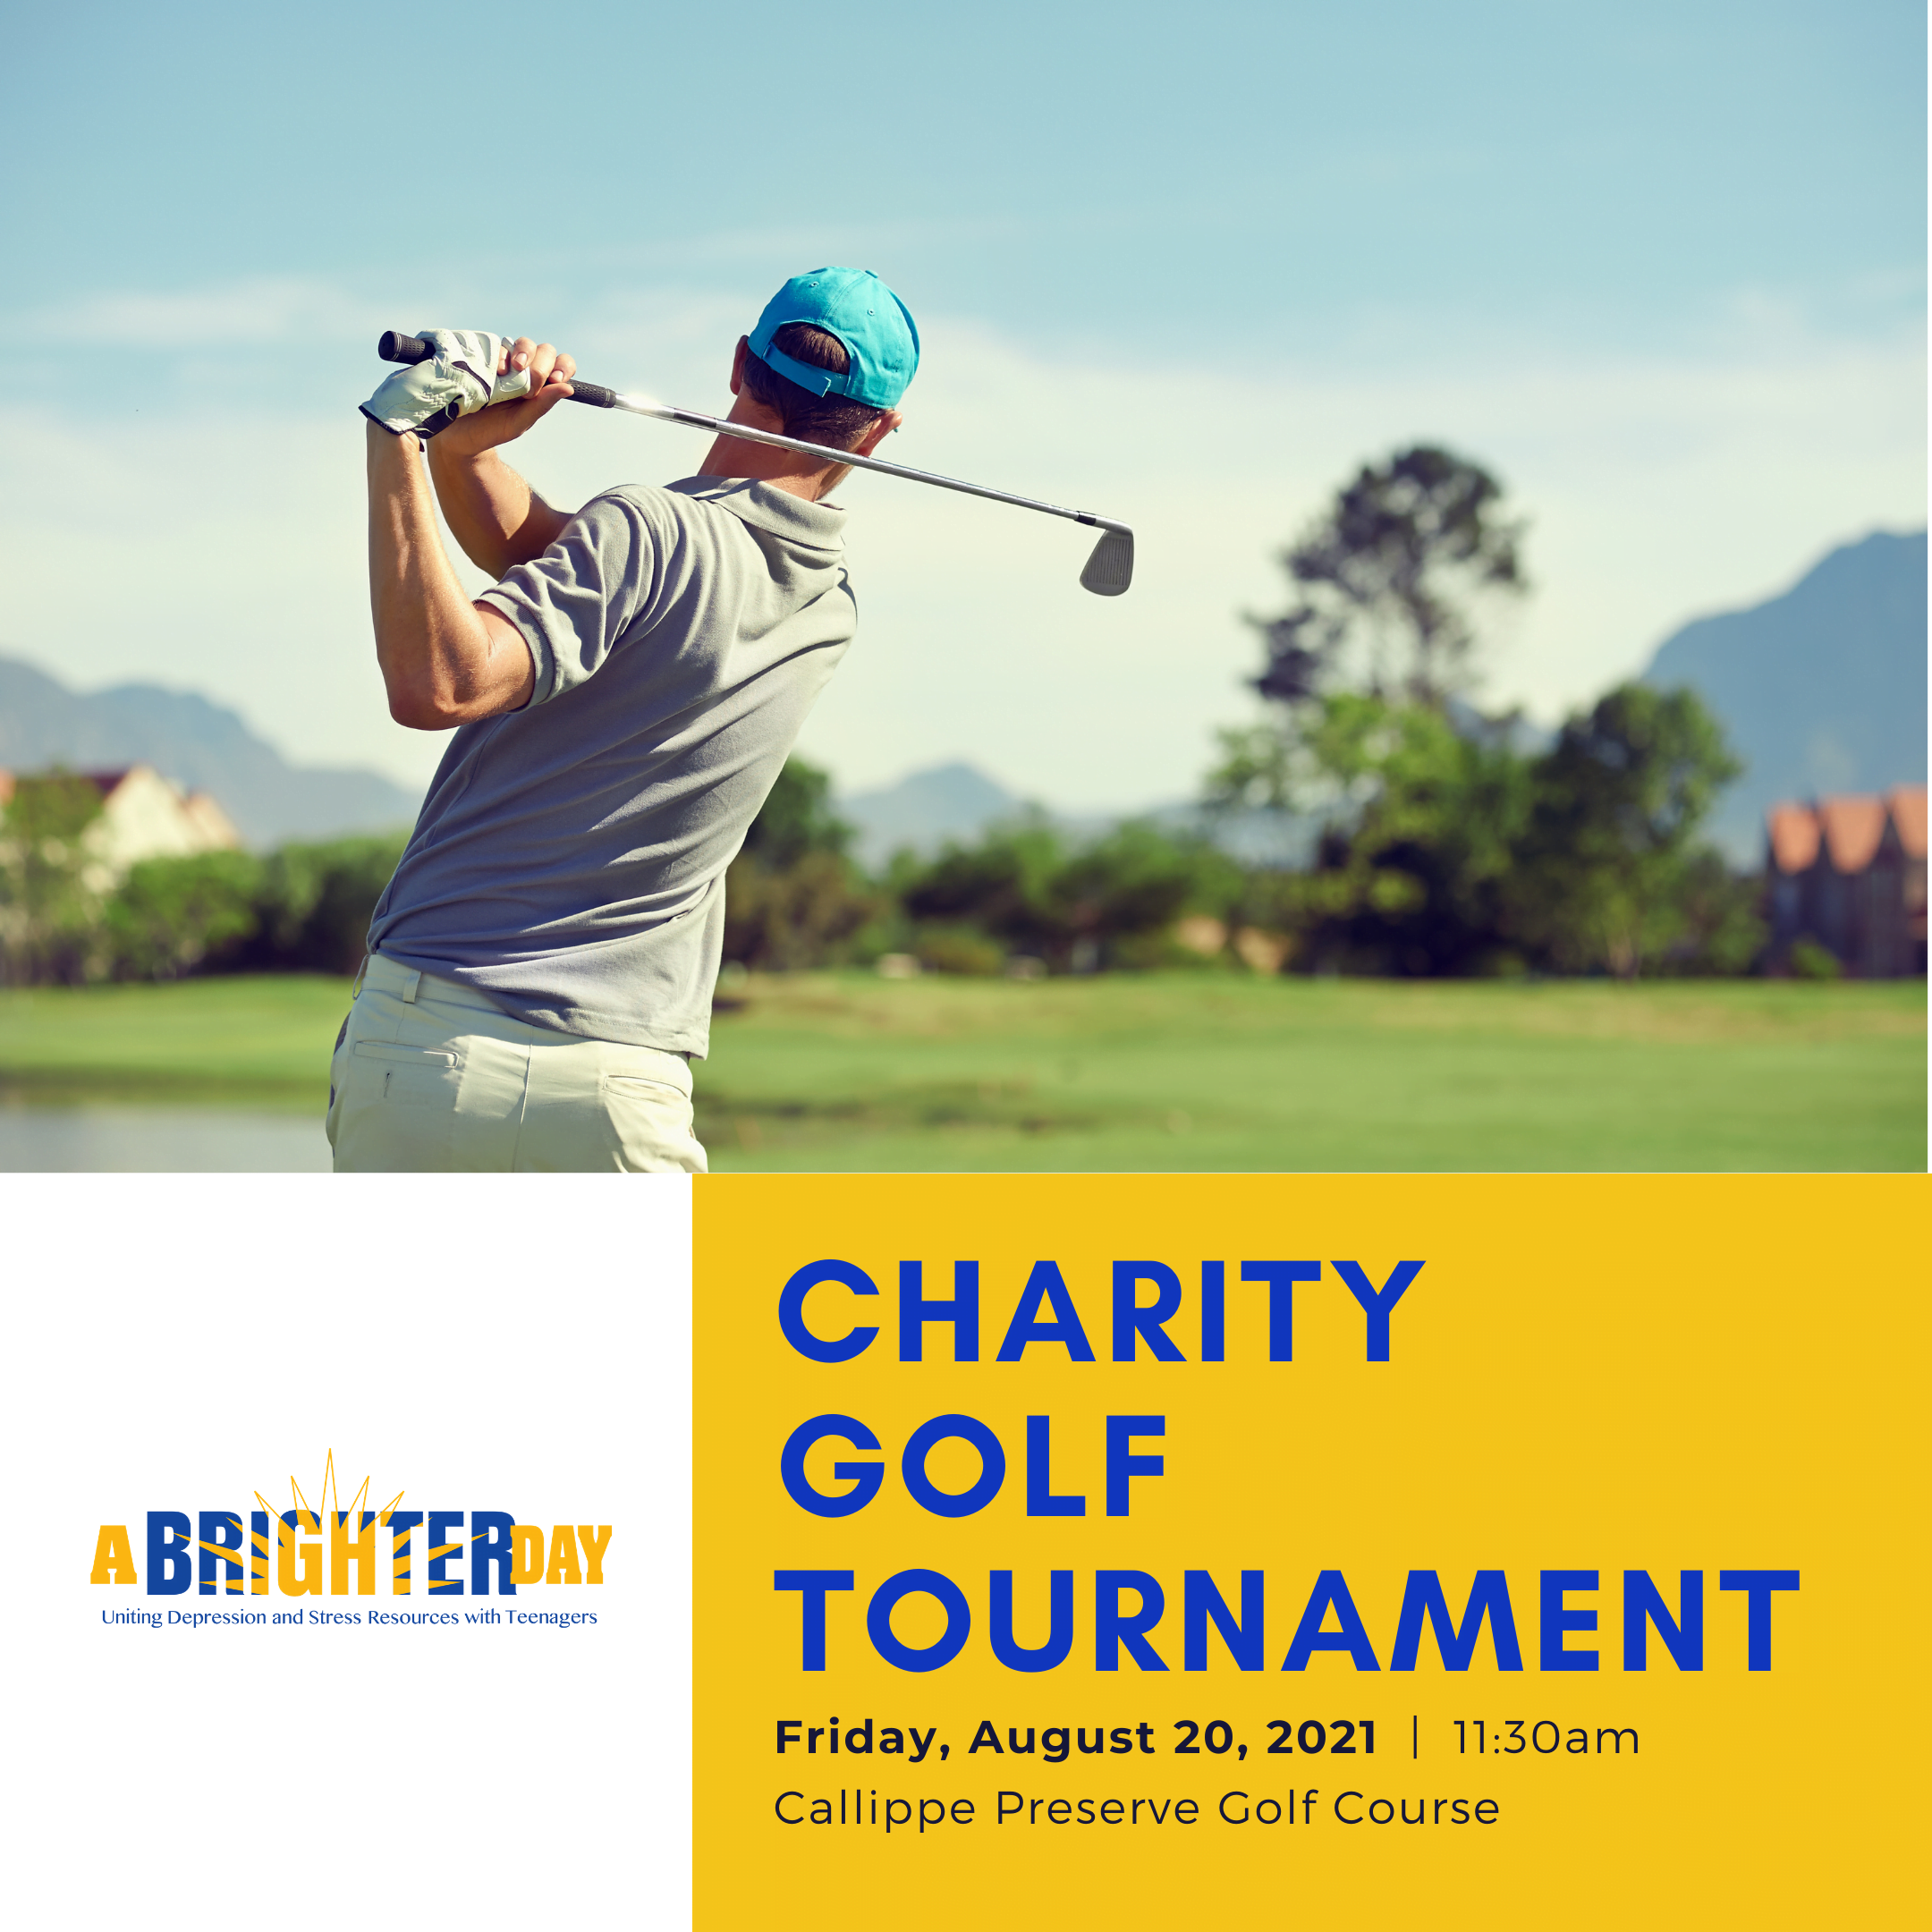 A Brighter Day Charity Golf Tournament